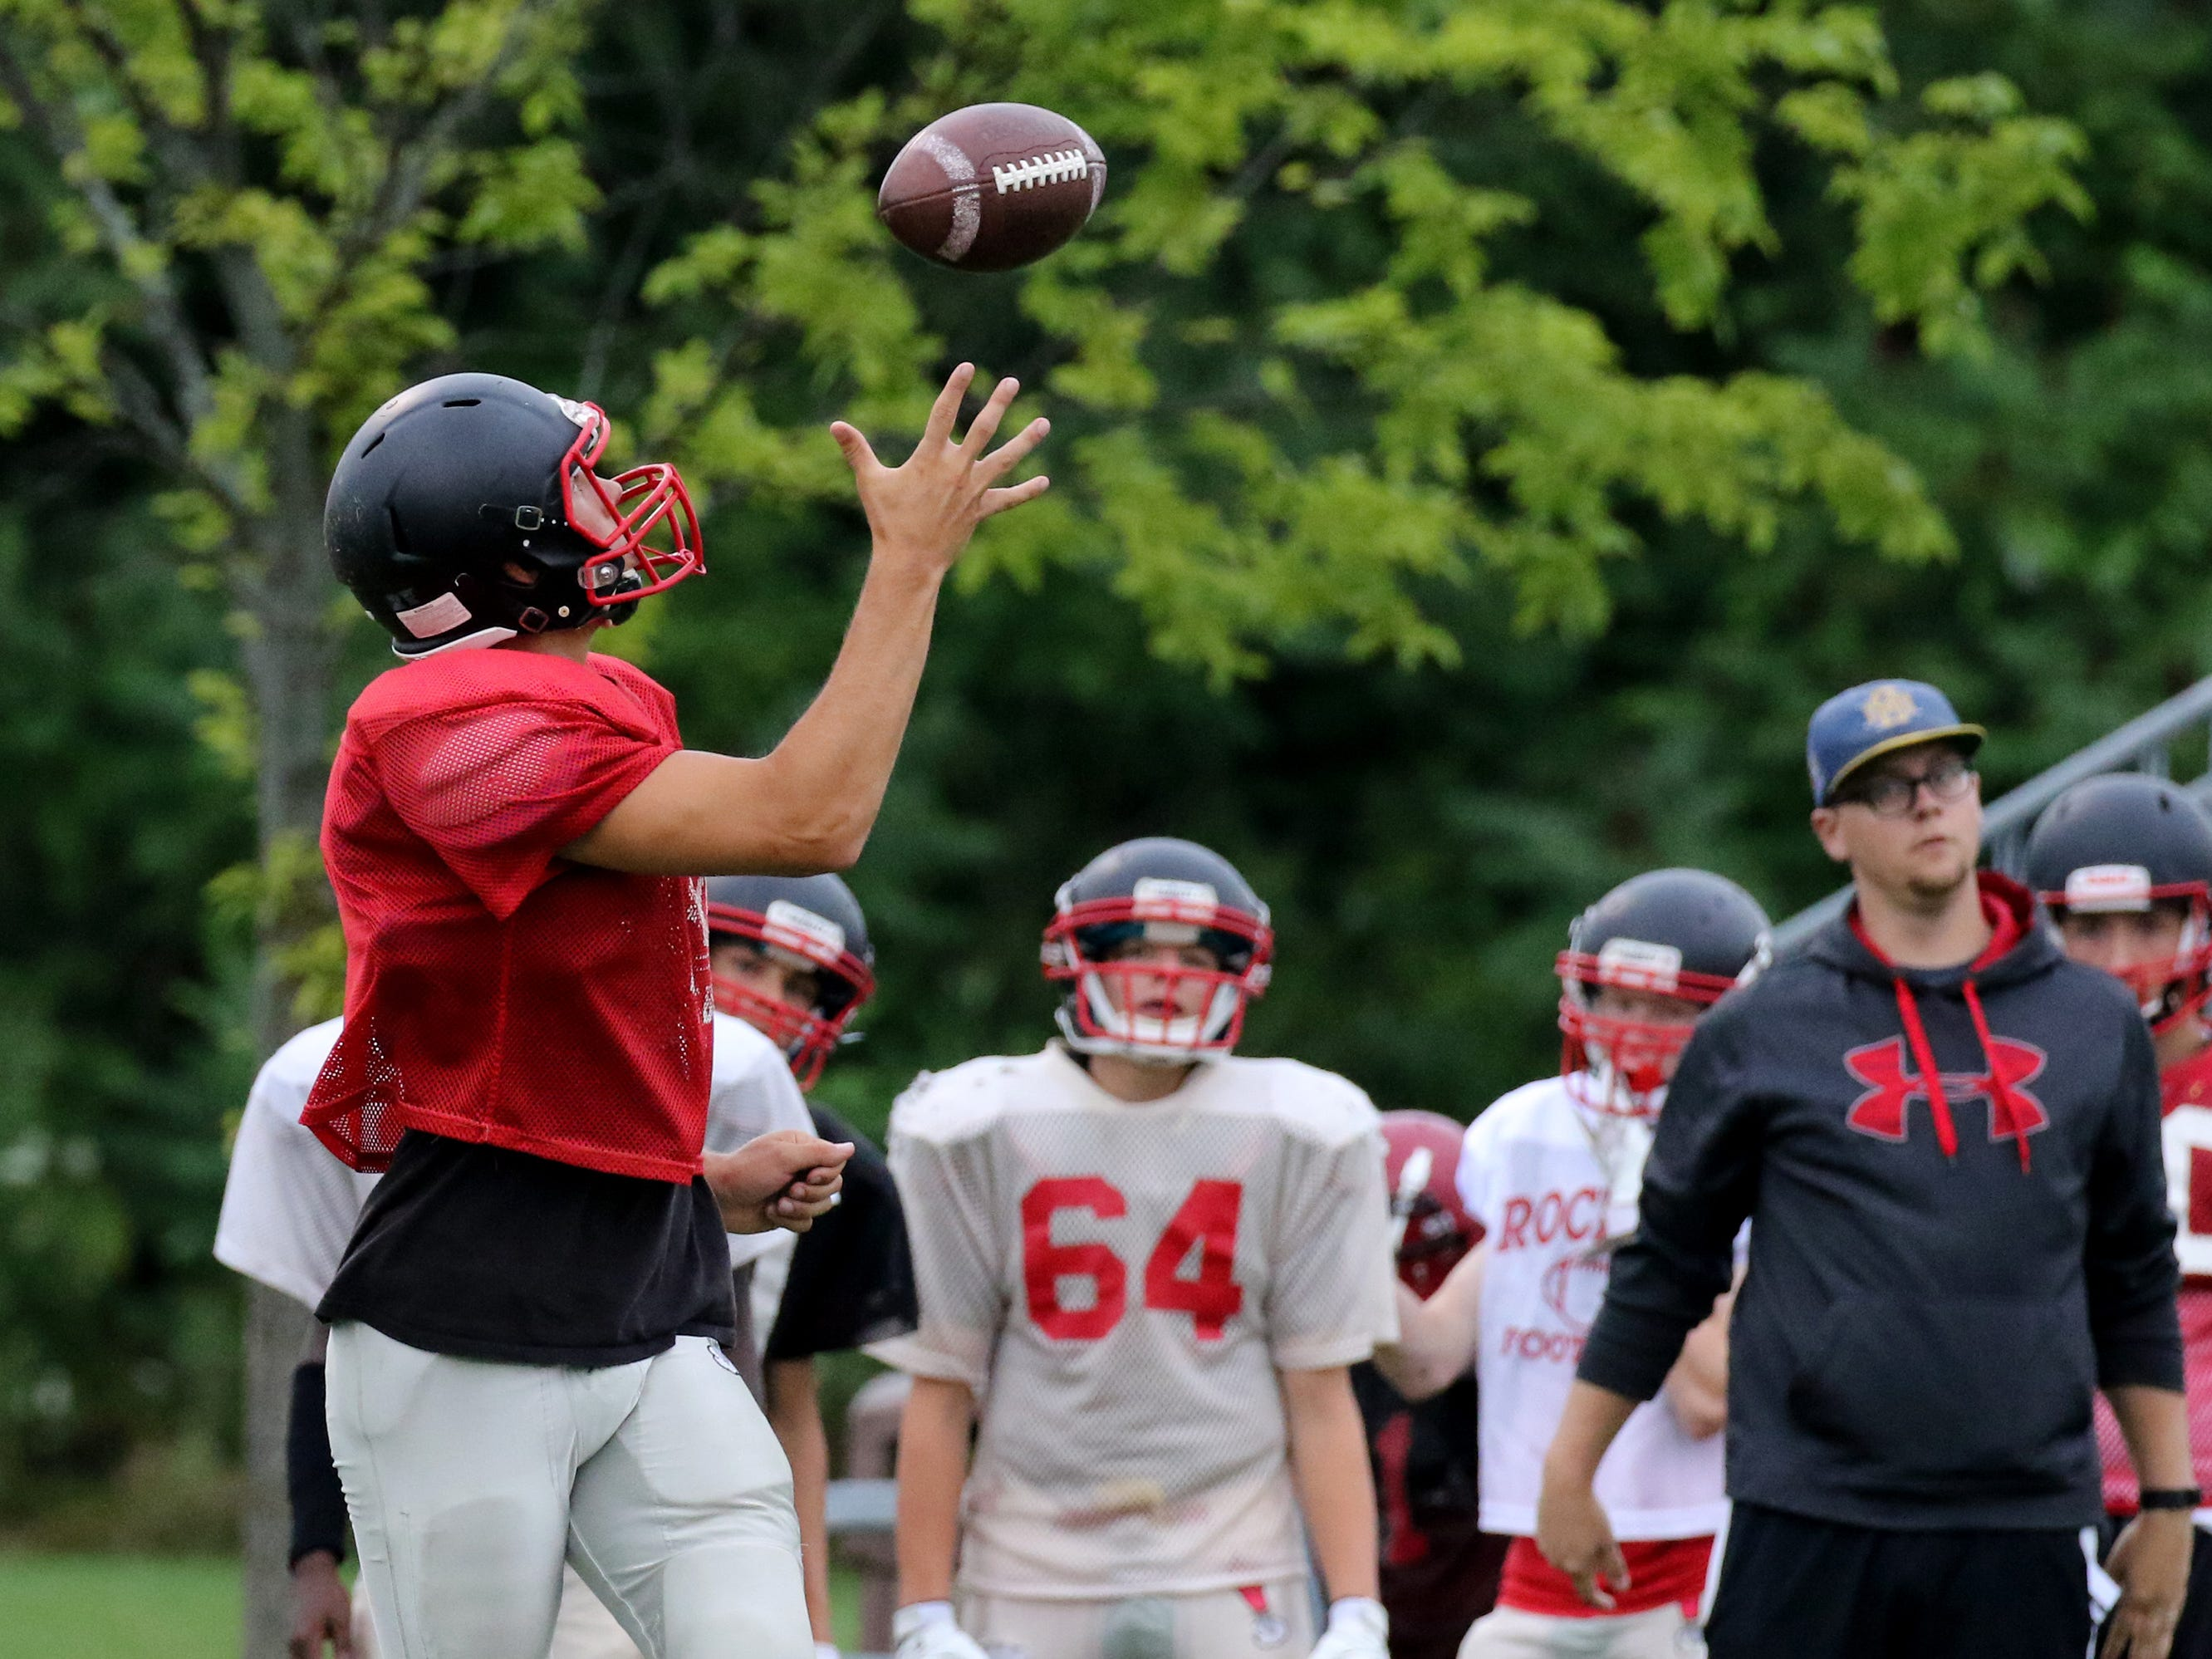 Recievers practice one-hand catches during South Milwaukee's Practice Night on Aug. 7 at South Milwaukee High School.